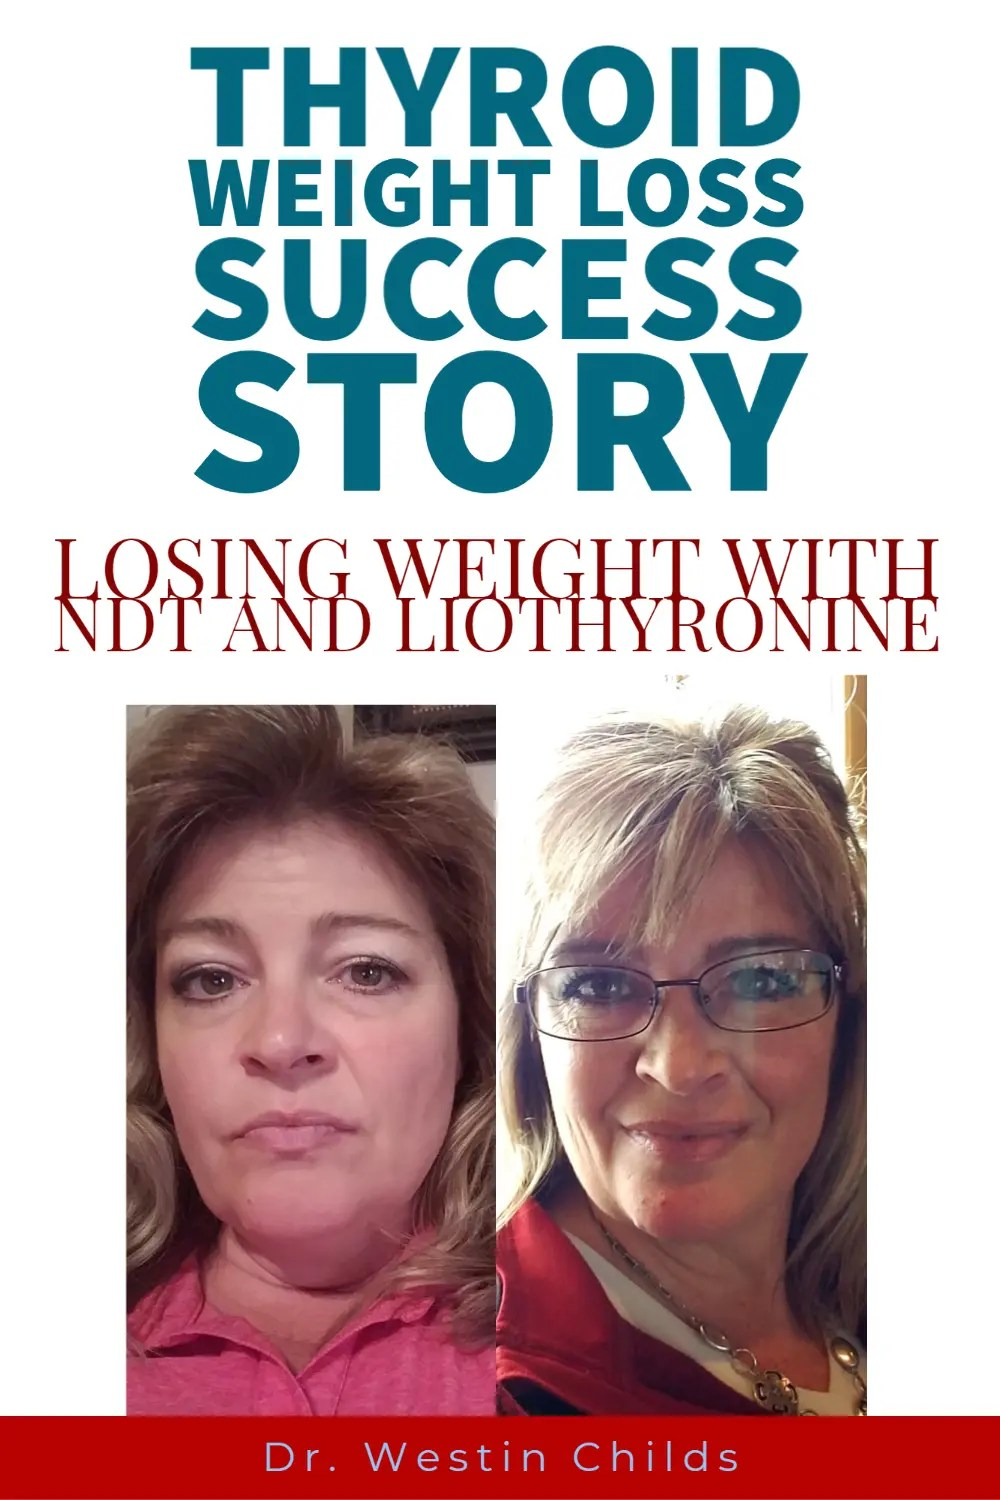 Losing Weight With Hypothyroidism Success Stories : losing, weight, hypothyroidism, success, stories, Thyroid, Success, Story:, Adding, Weight, Energy